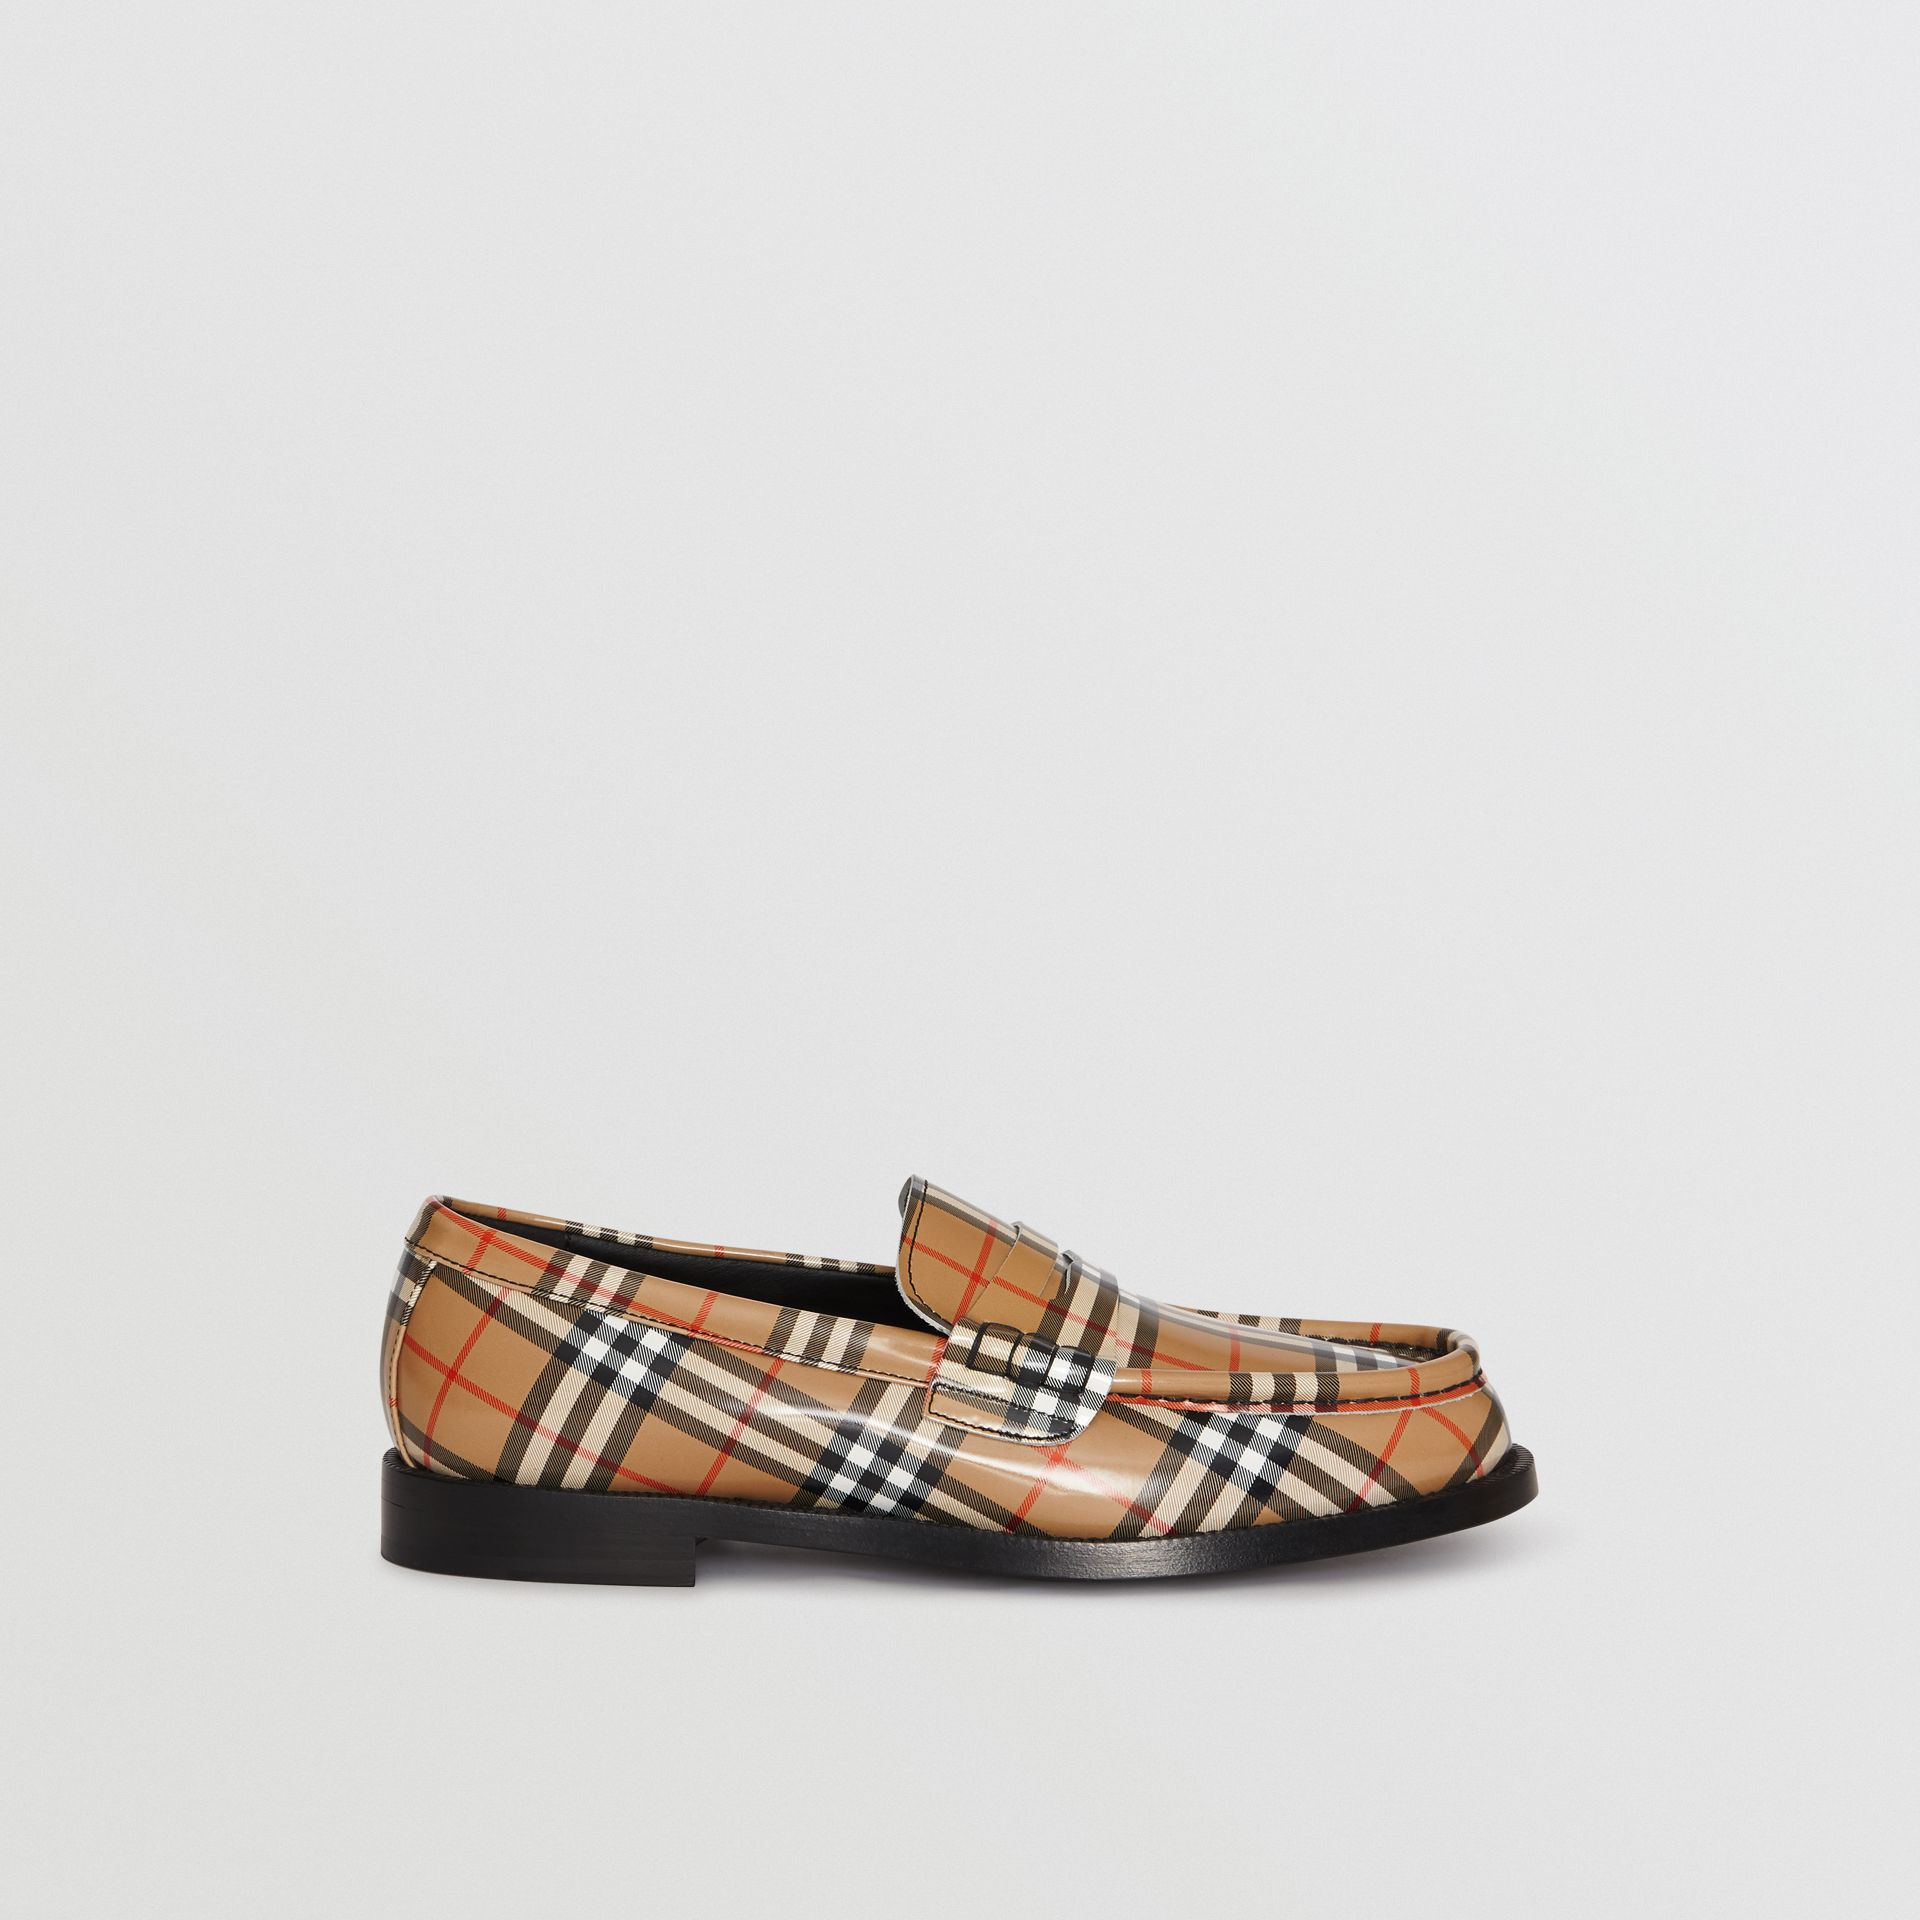 Gosha x Burberry Check Leather Loafers in Antique Yellow - Men | Burberry - gallery image 7